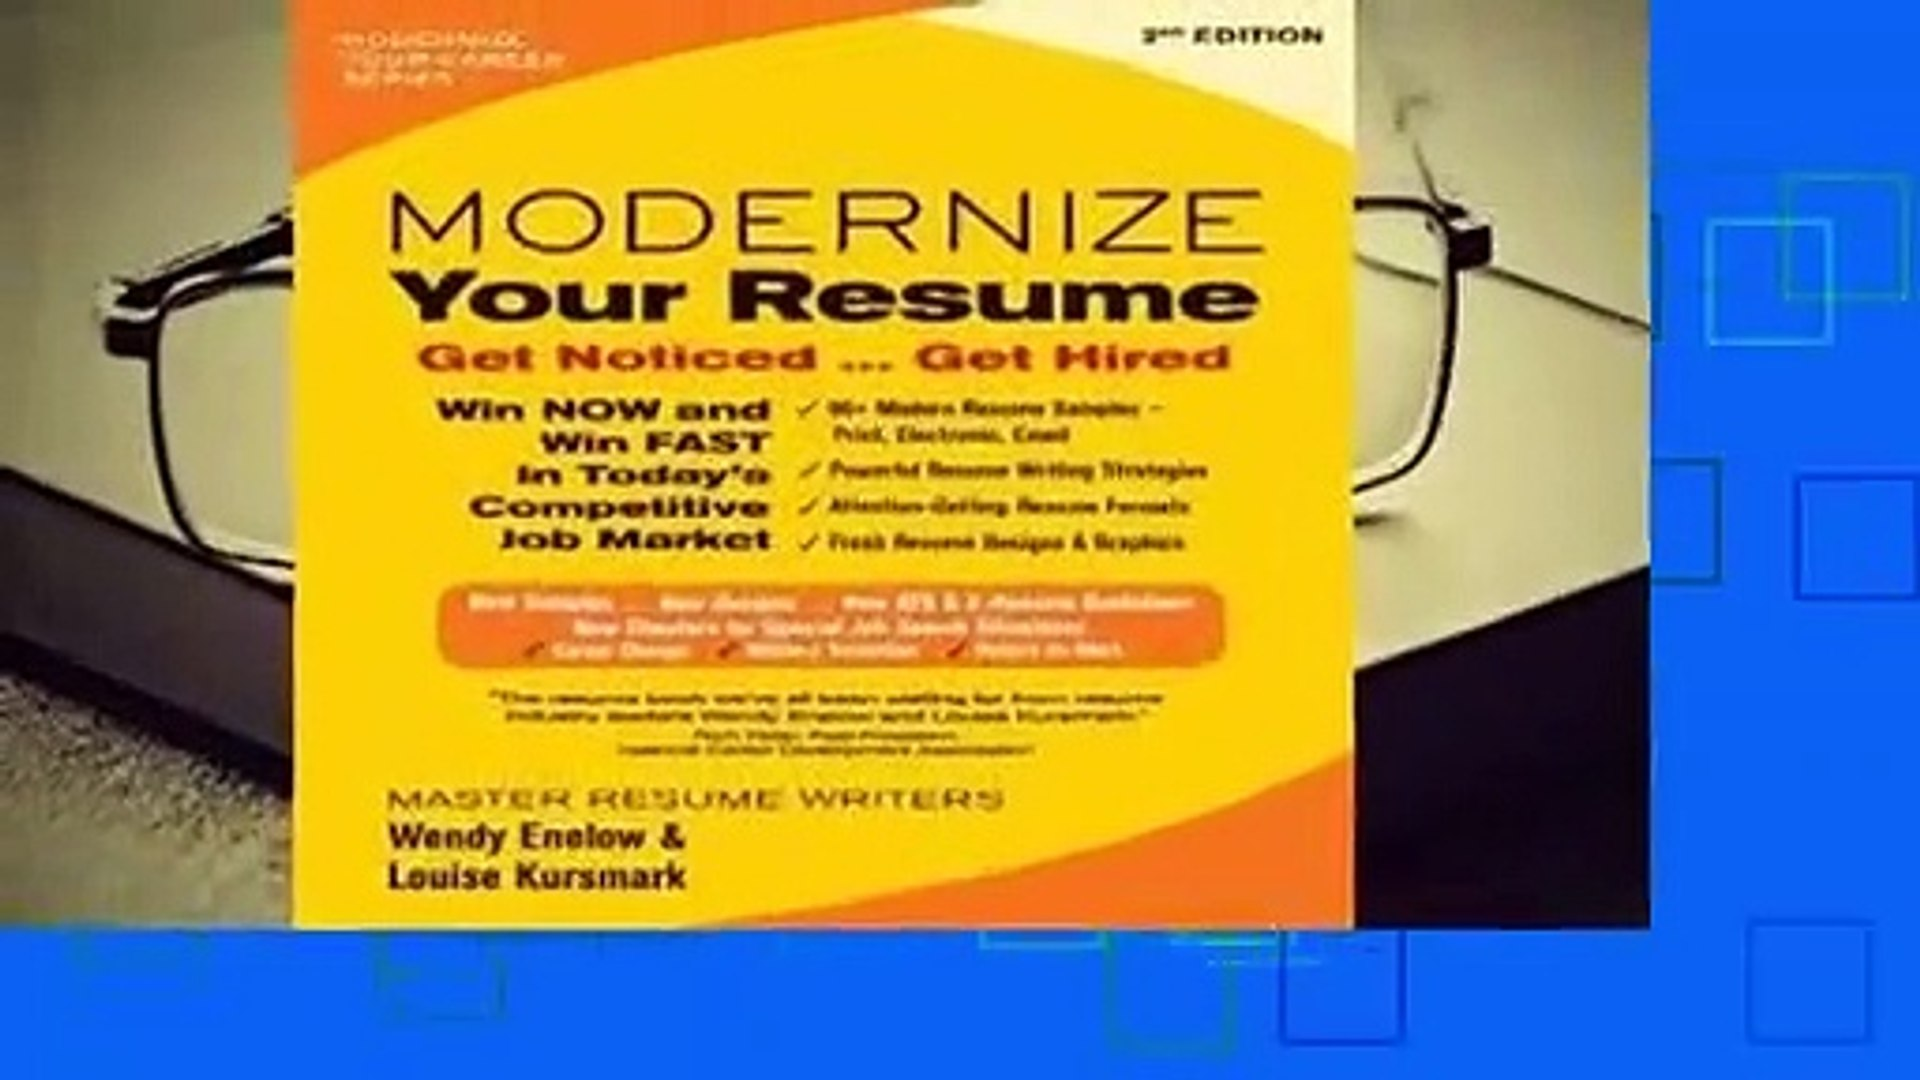 about for books modernize your resume get noticed hired complete dailymotion free maker Resume Modernize Your Resume Get Noticed Get Hired